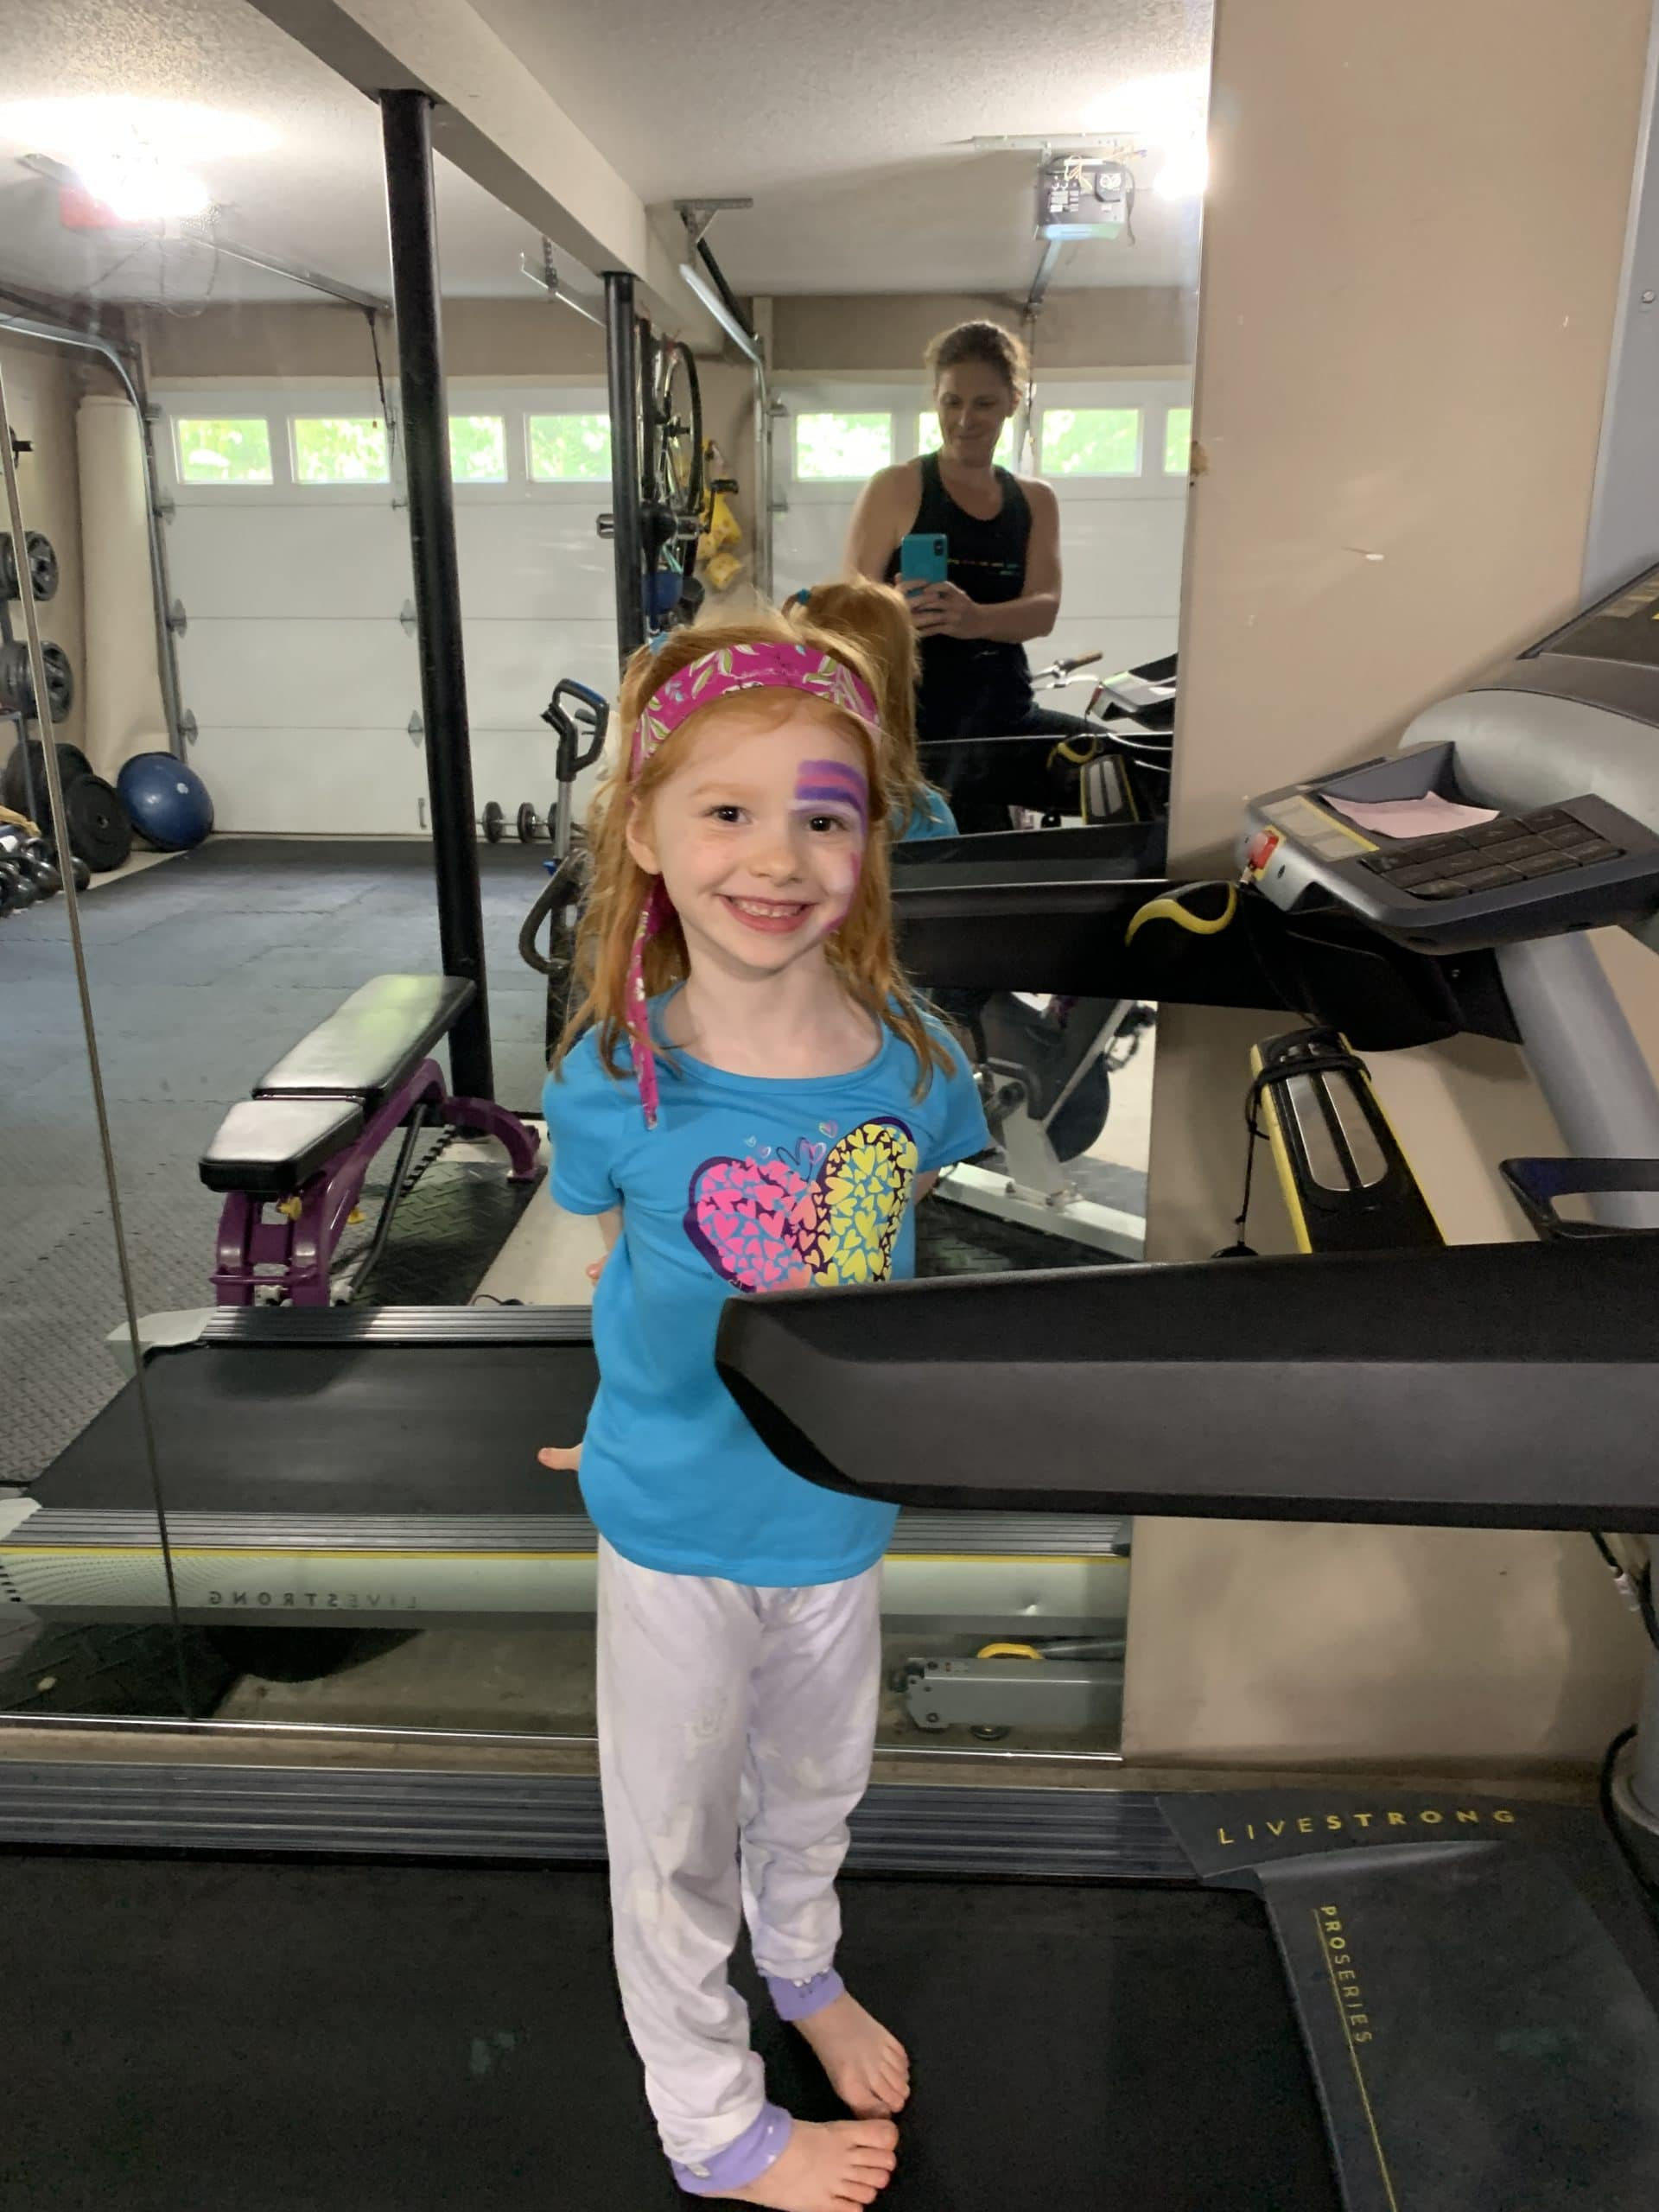 Exercising with B on the treadmill